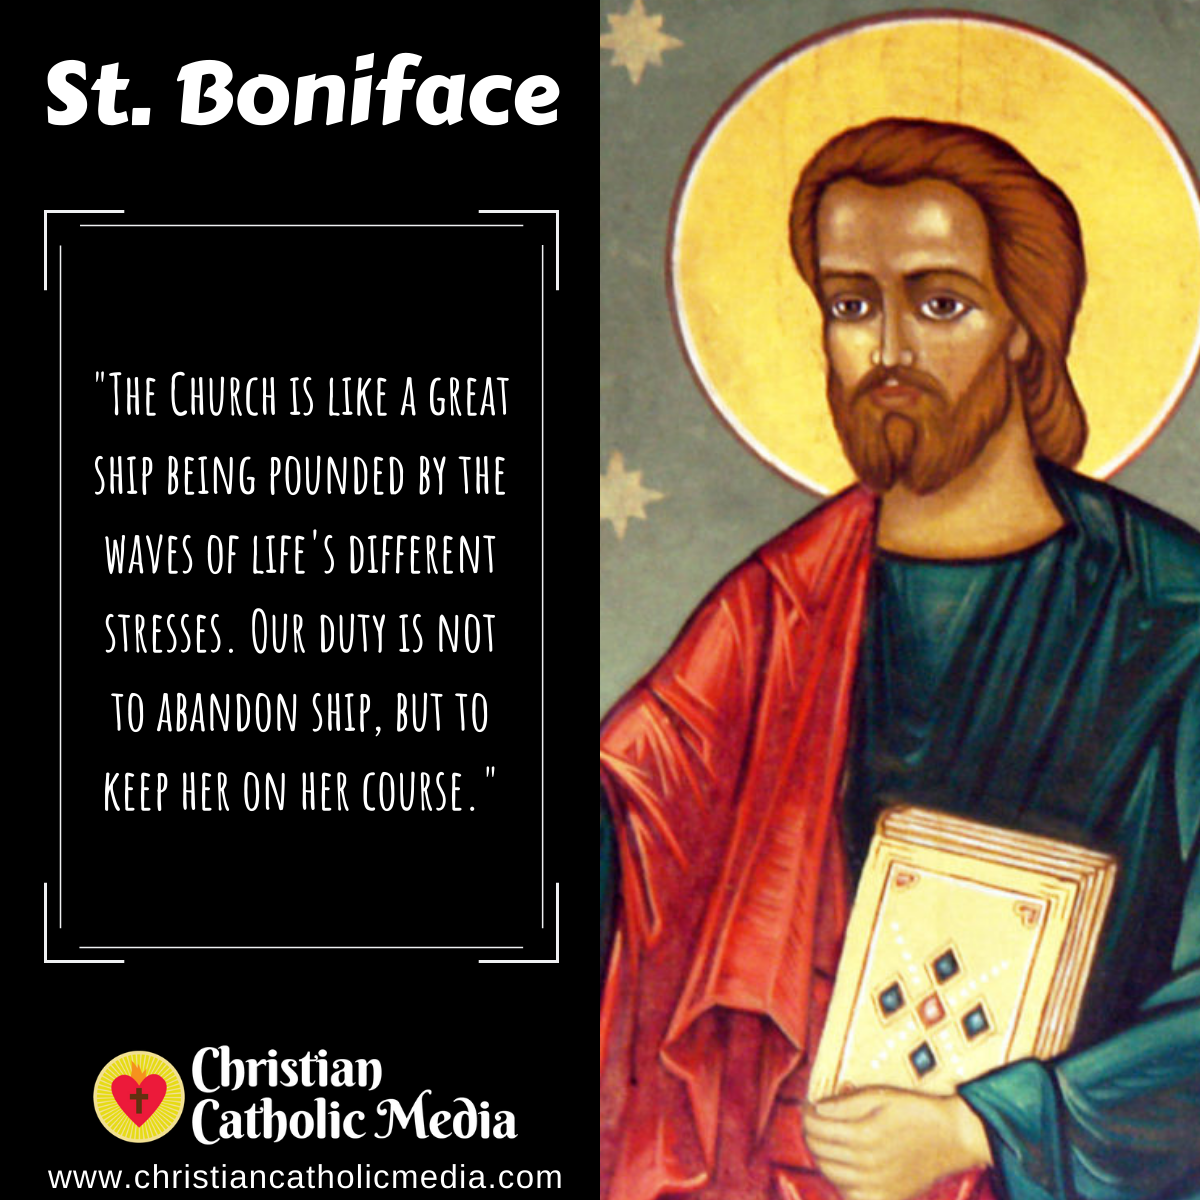 St. Boniface - Friday Jun 5, 2020